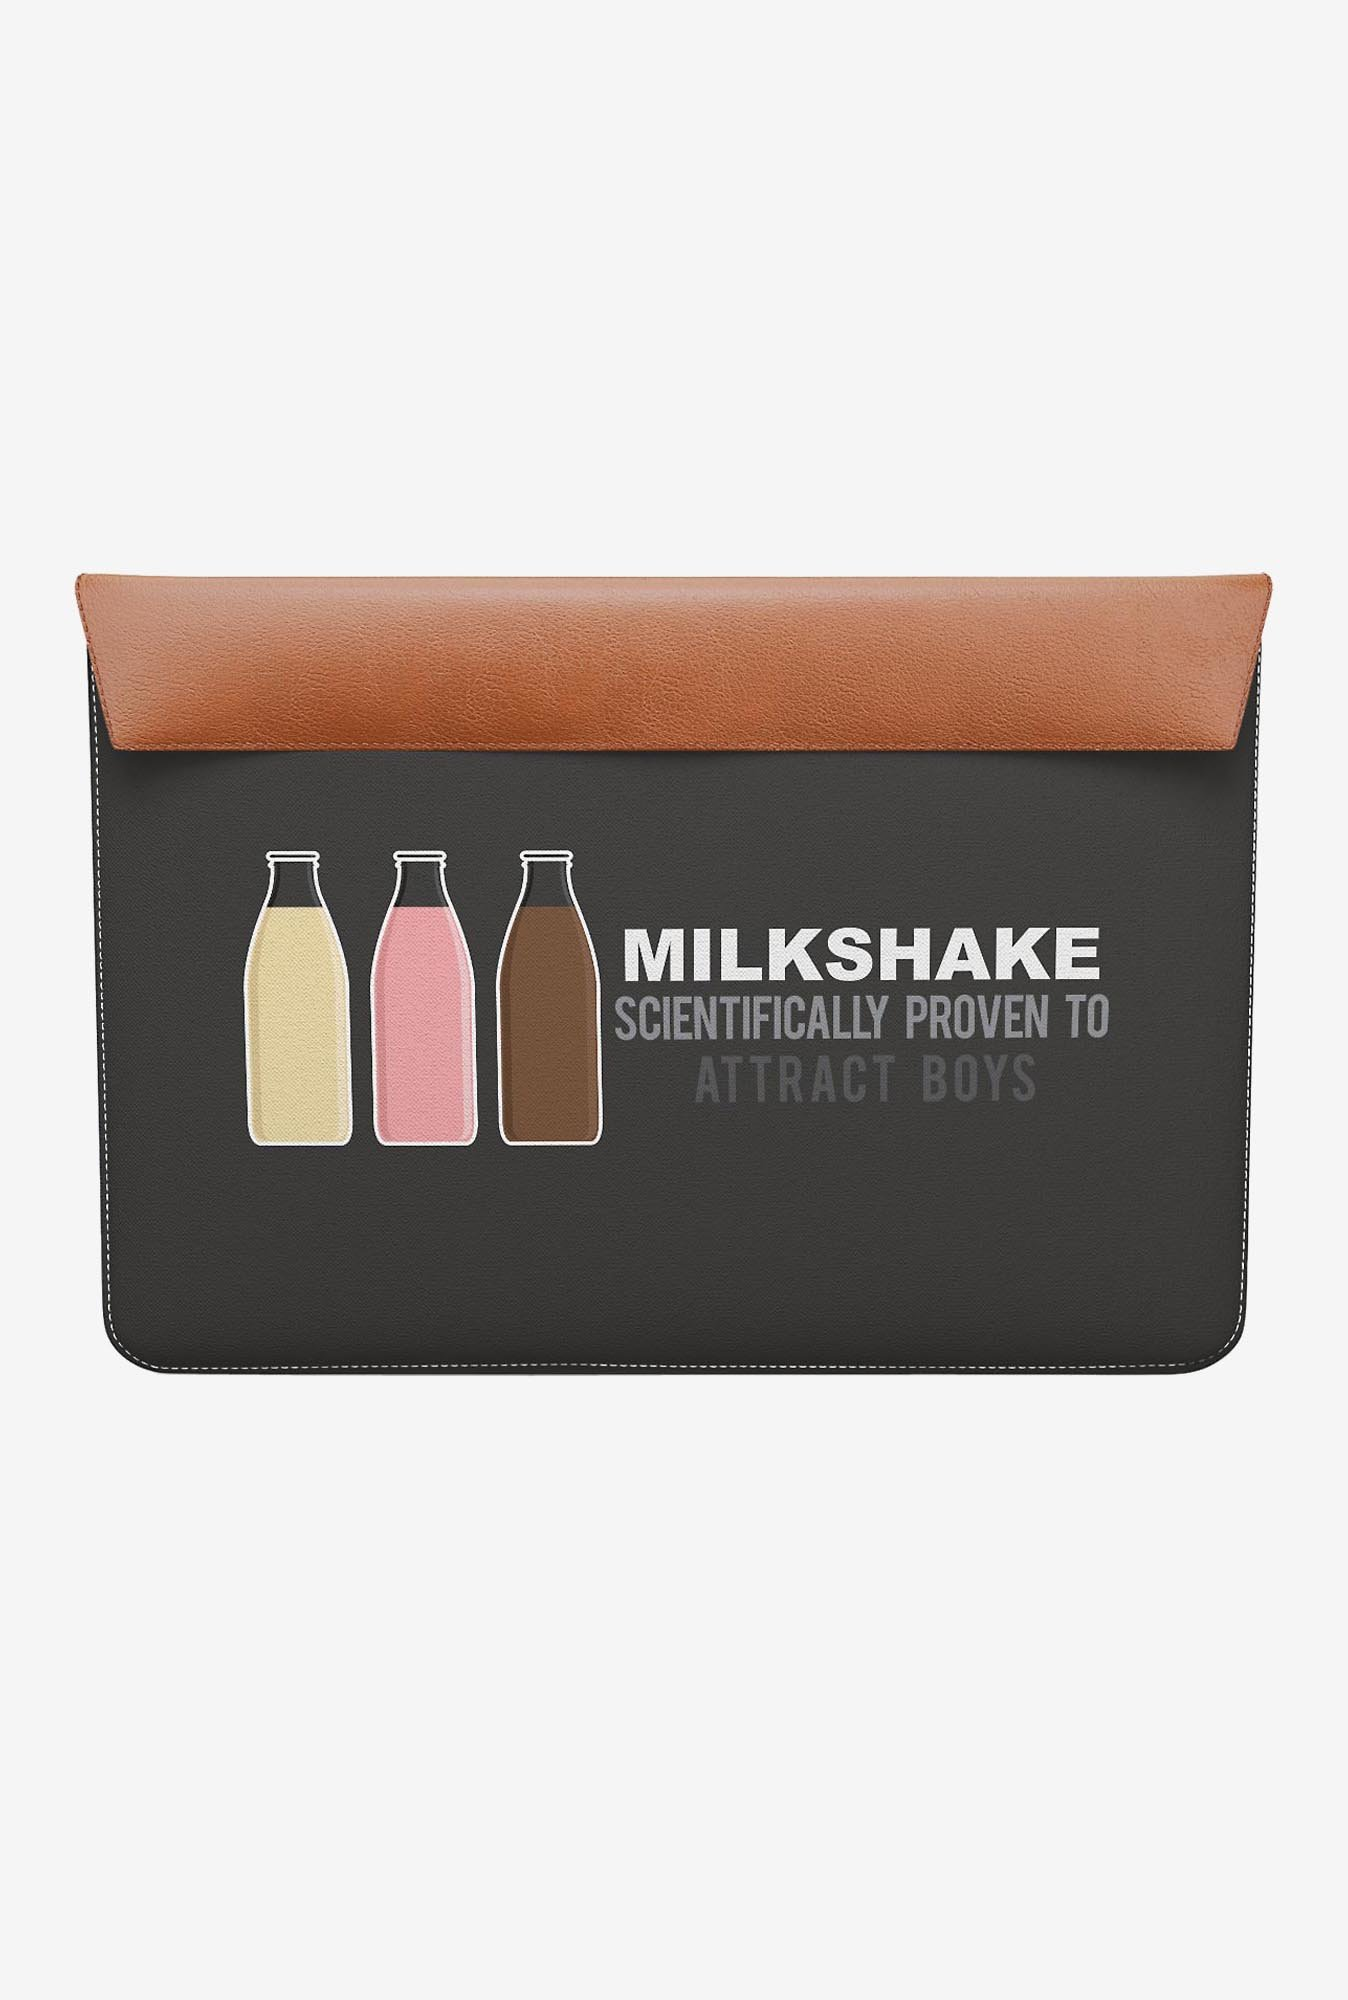 "DailyObjects Milkshake MacBook Air 11"" Envelope Sleeve"